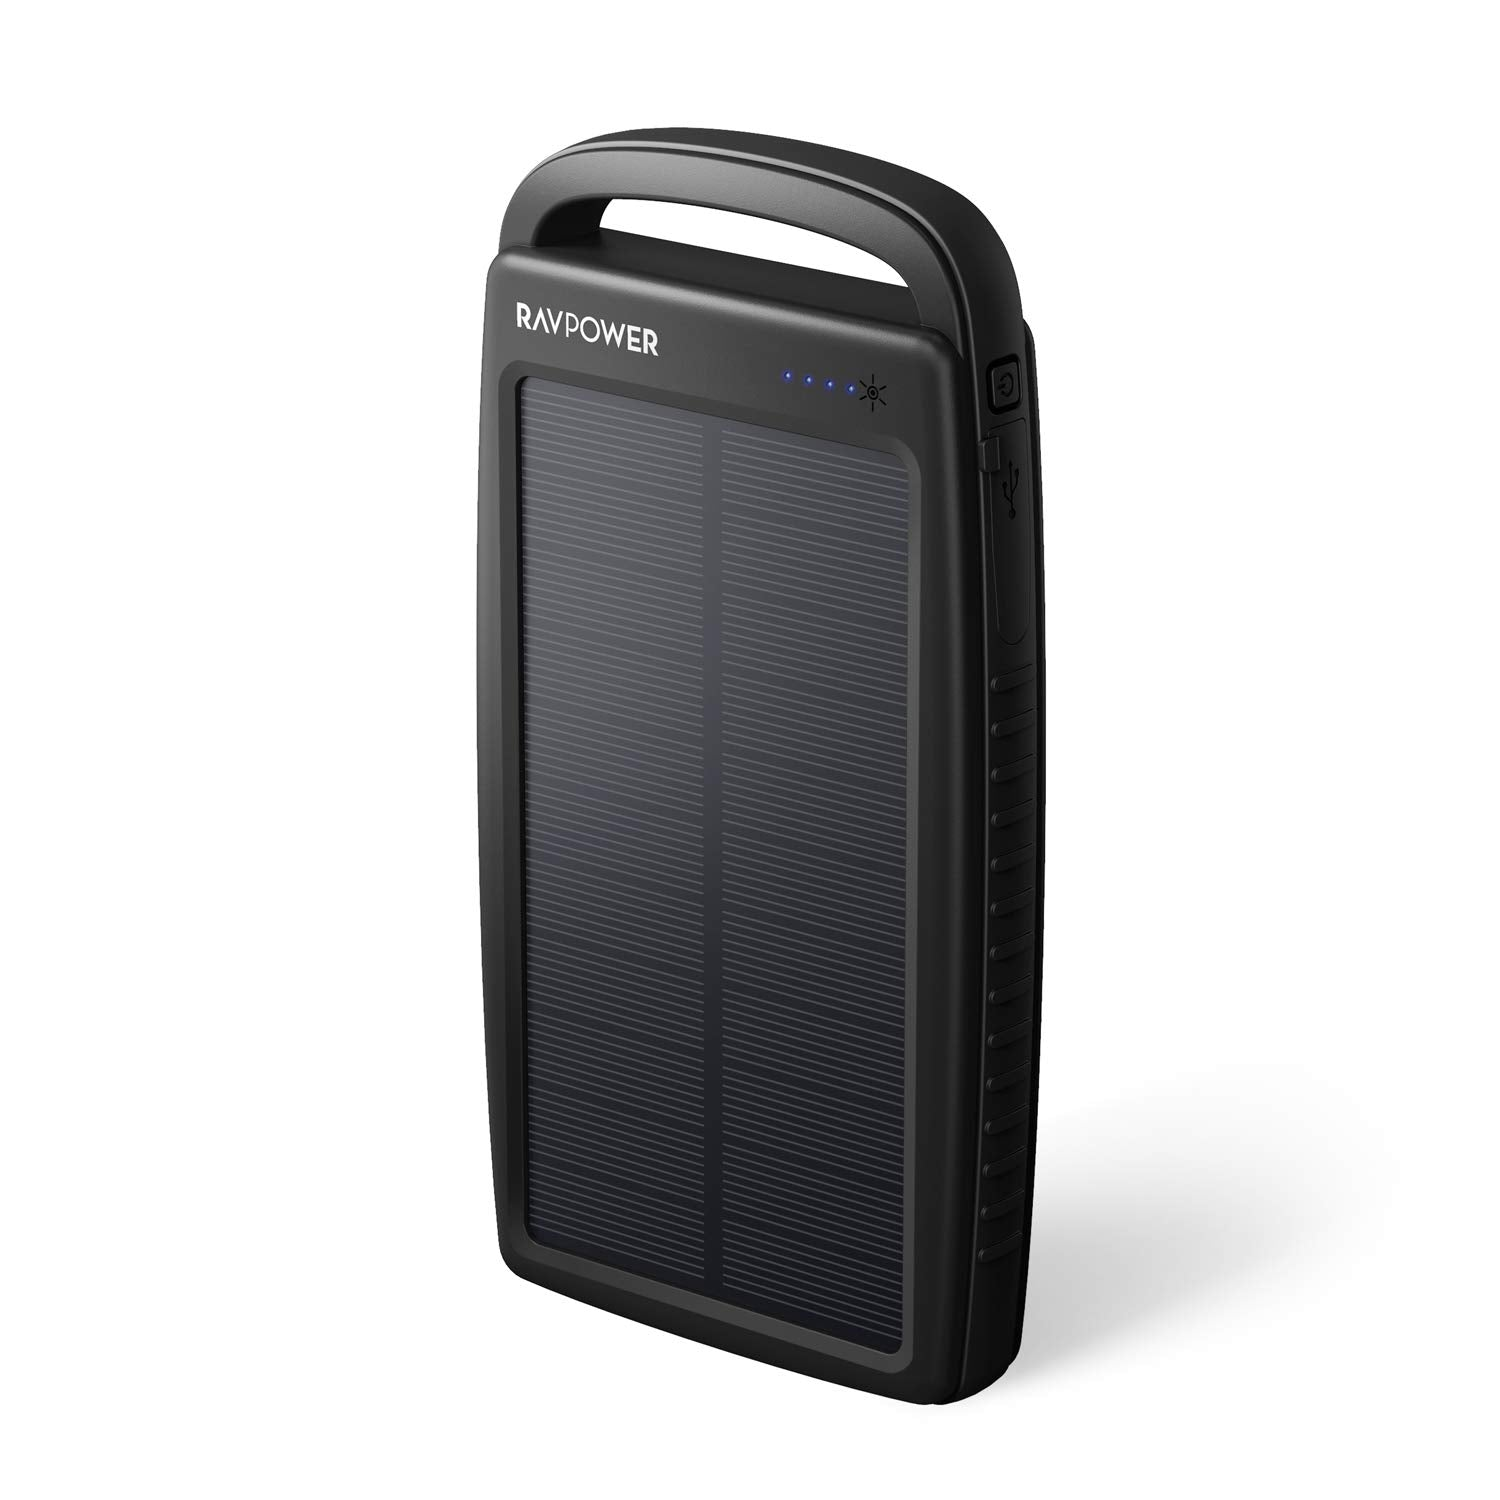 Solar Charger 20000mAh RAVPower Portable Charger Solar Power Bank with Dual 2.4A Outputs, External Battery Pack with Flashlight for Smartphones, Tablets and More - BelCorner